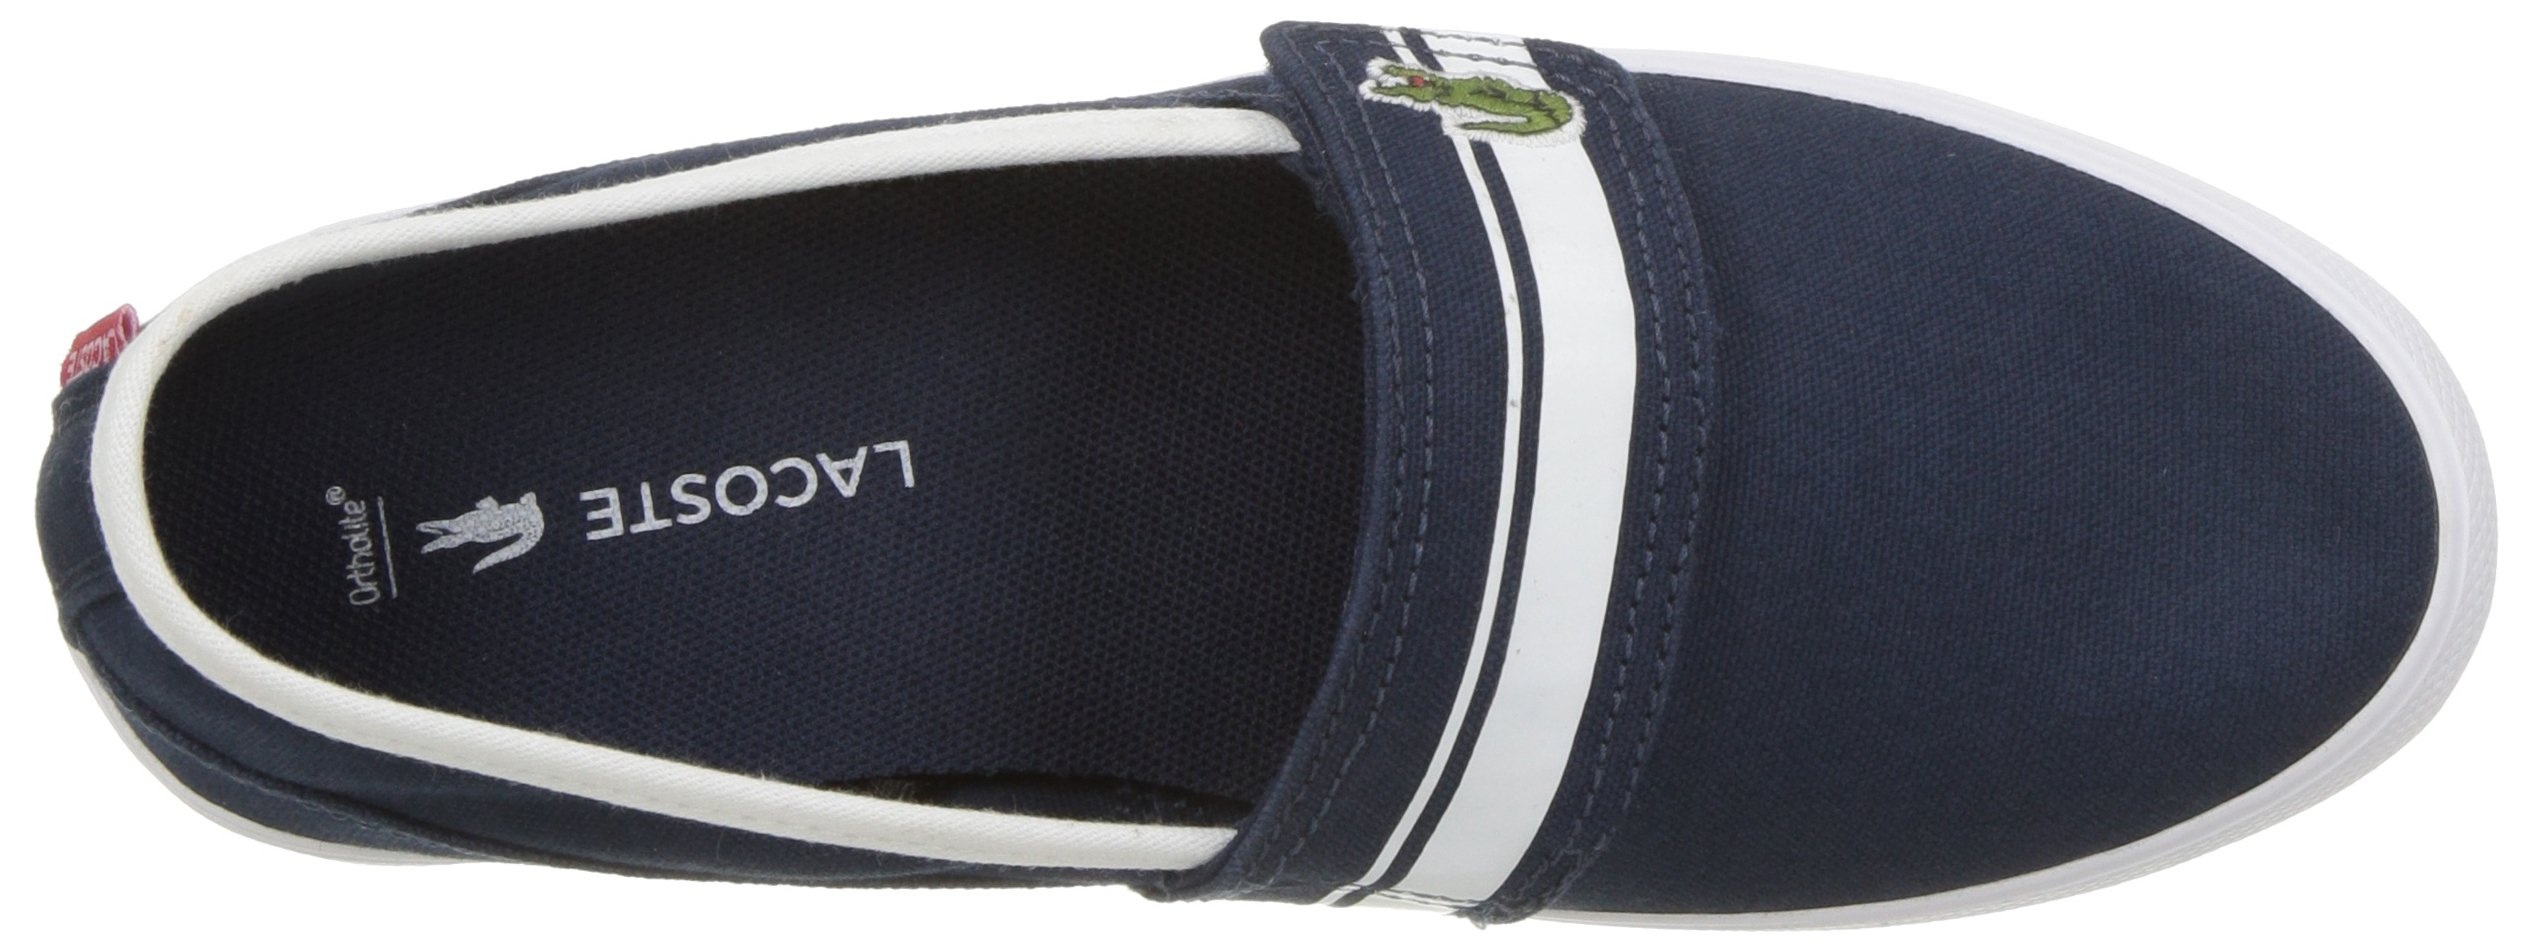 Lacoste Kids' Marice Slip-ONS,Navy/White Cotton Canvas,13. M US Little Kid by Lacoste (Image #7)